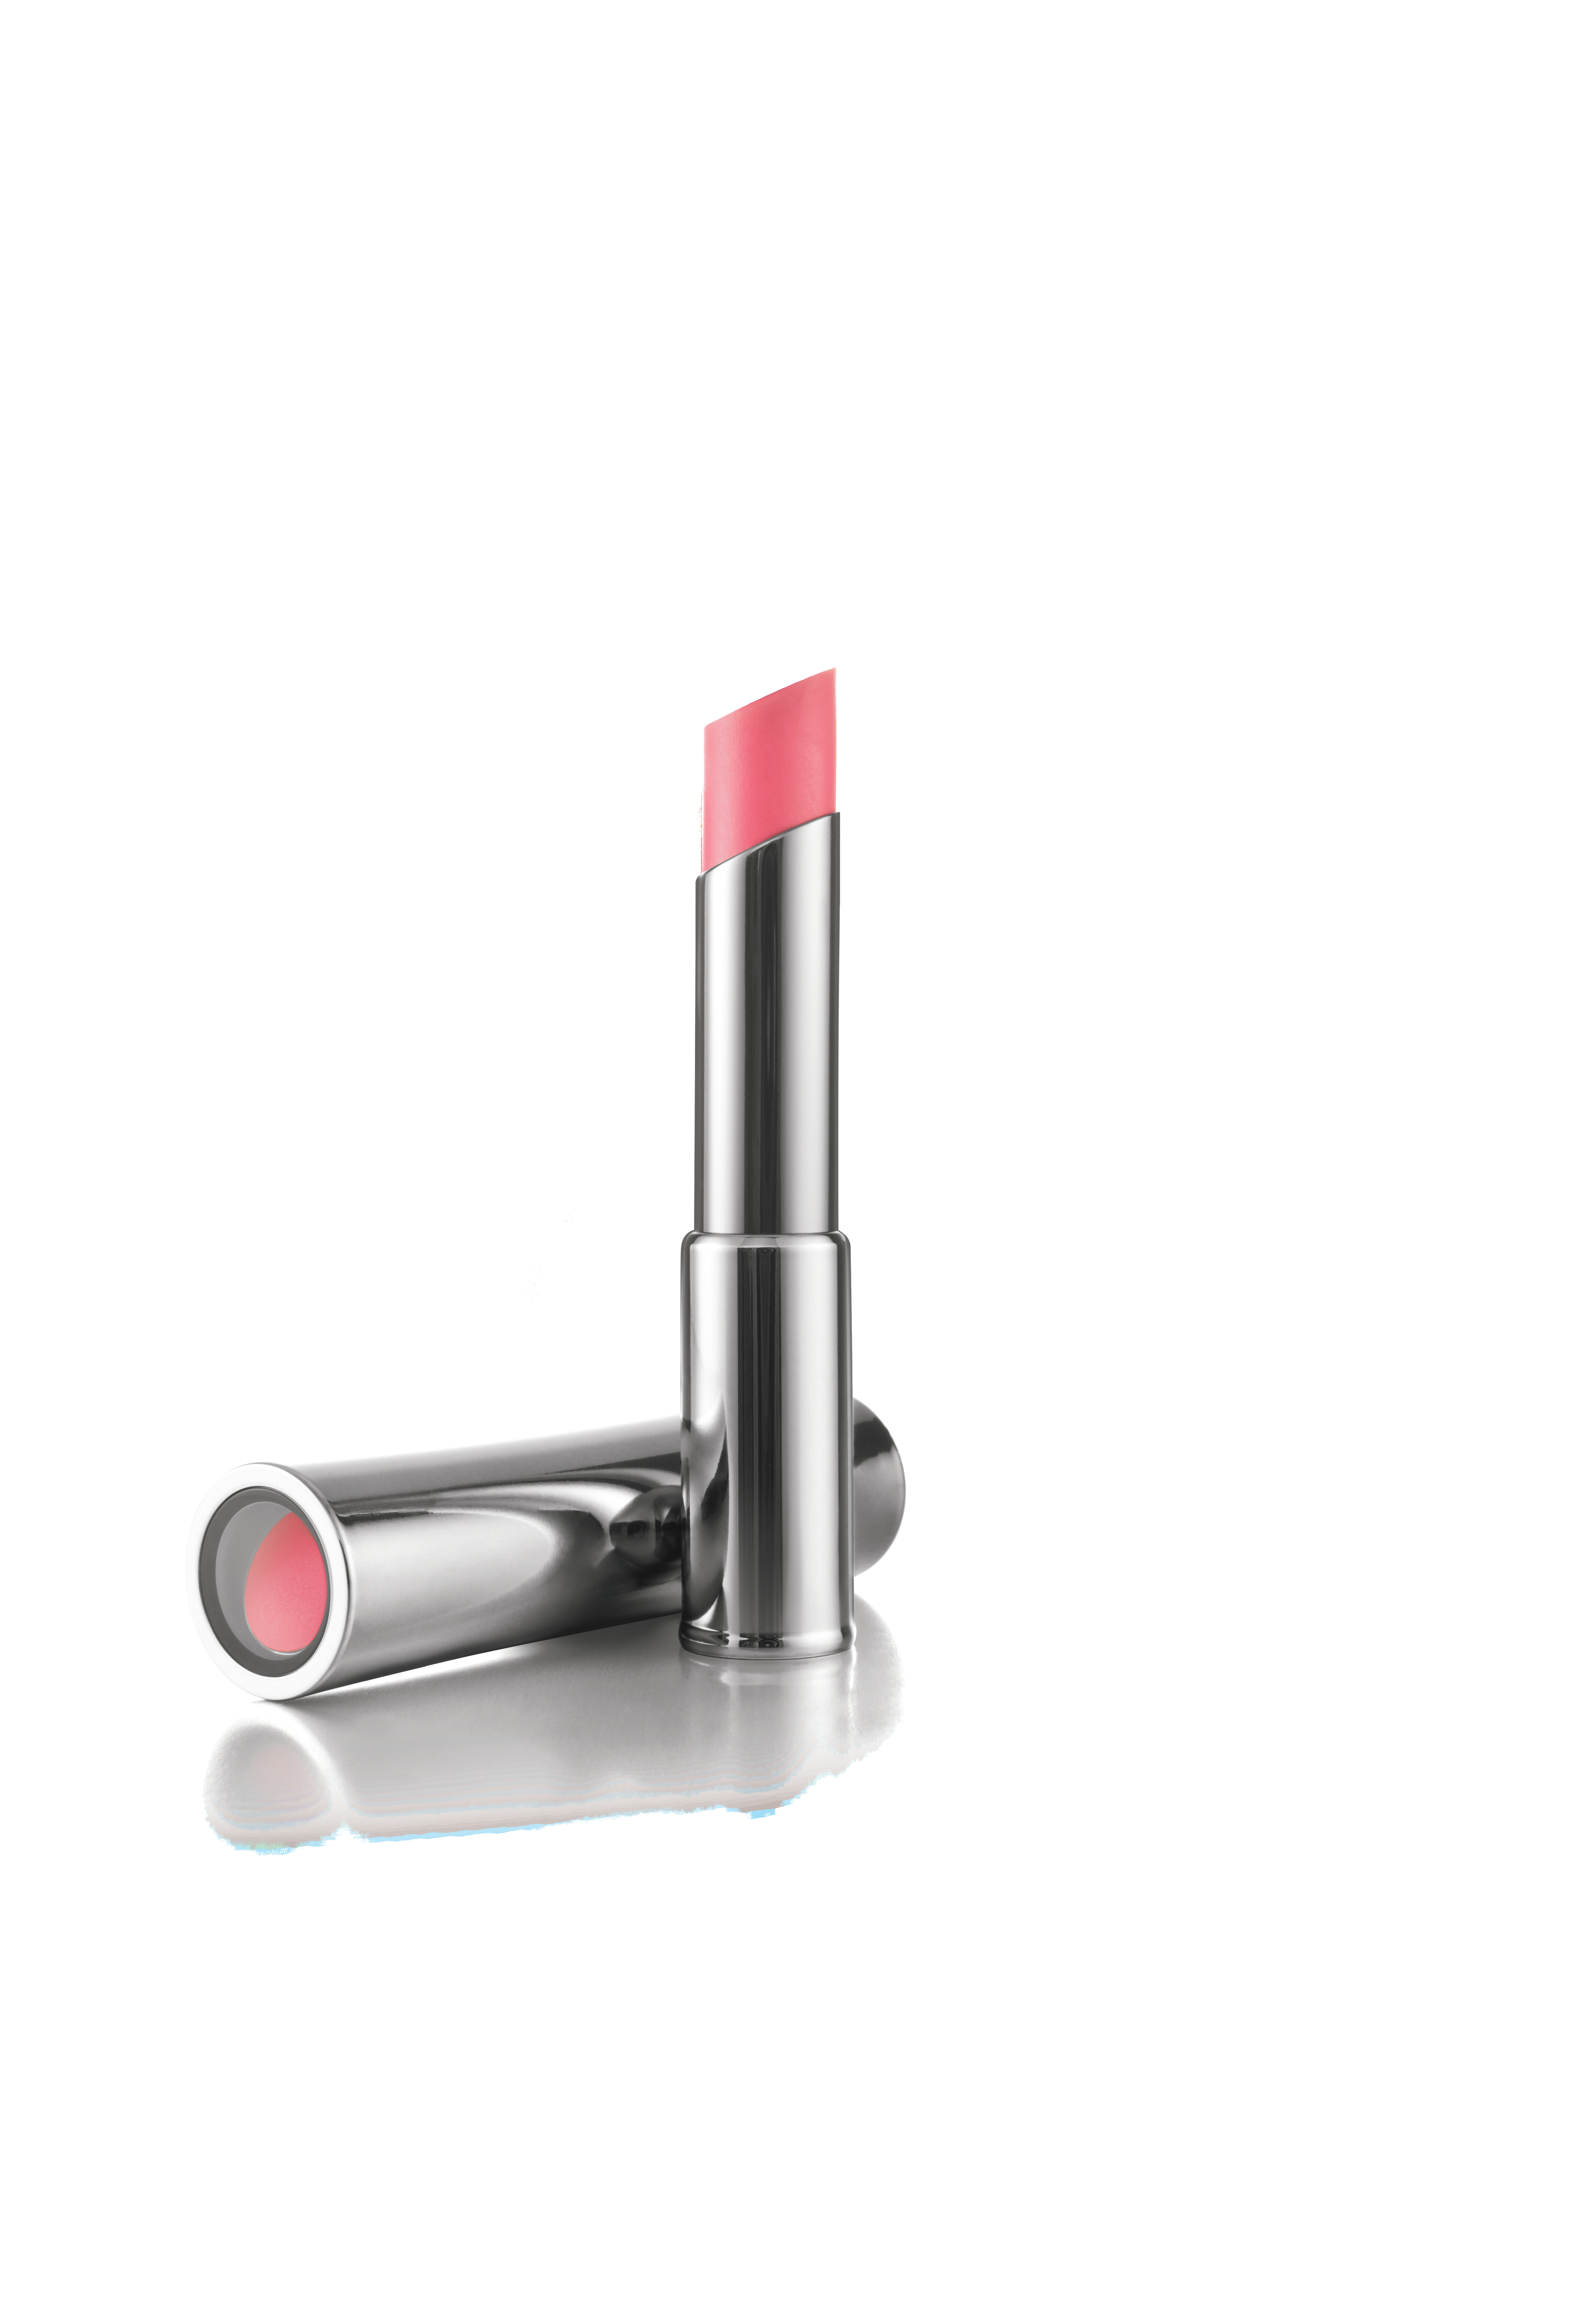 """The distinctive trim-line design of Mary Kay(R) True Dimensions(TM) Lipstick was developed to modernize the application experience featuring a nesting """"clicking cradle"""" technology. (Photo: Business Wire)"""